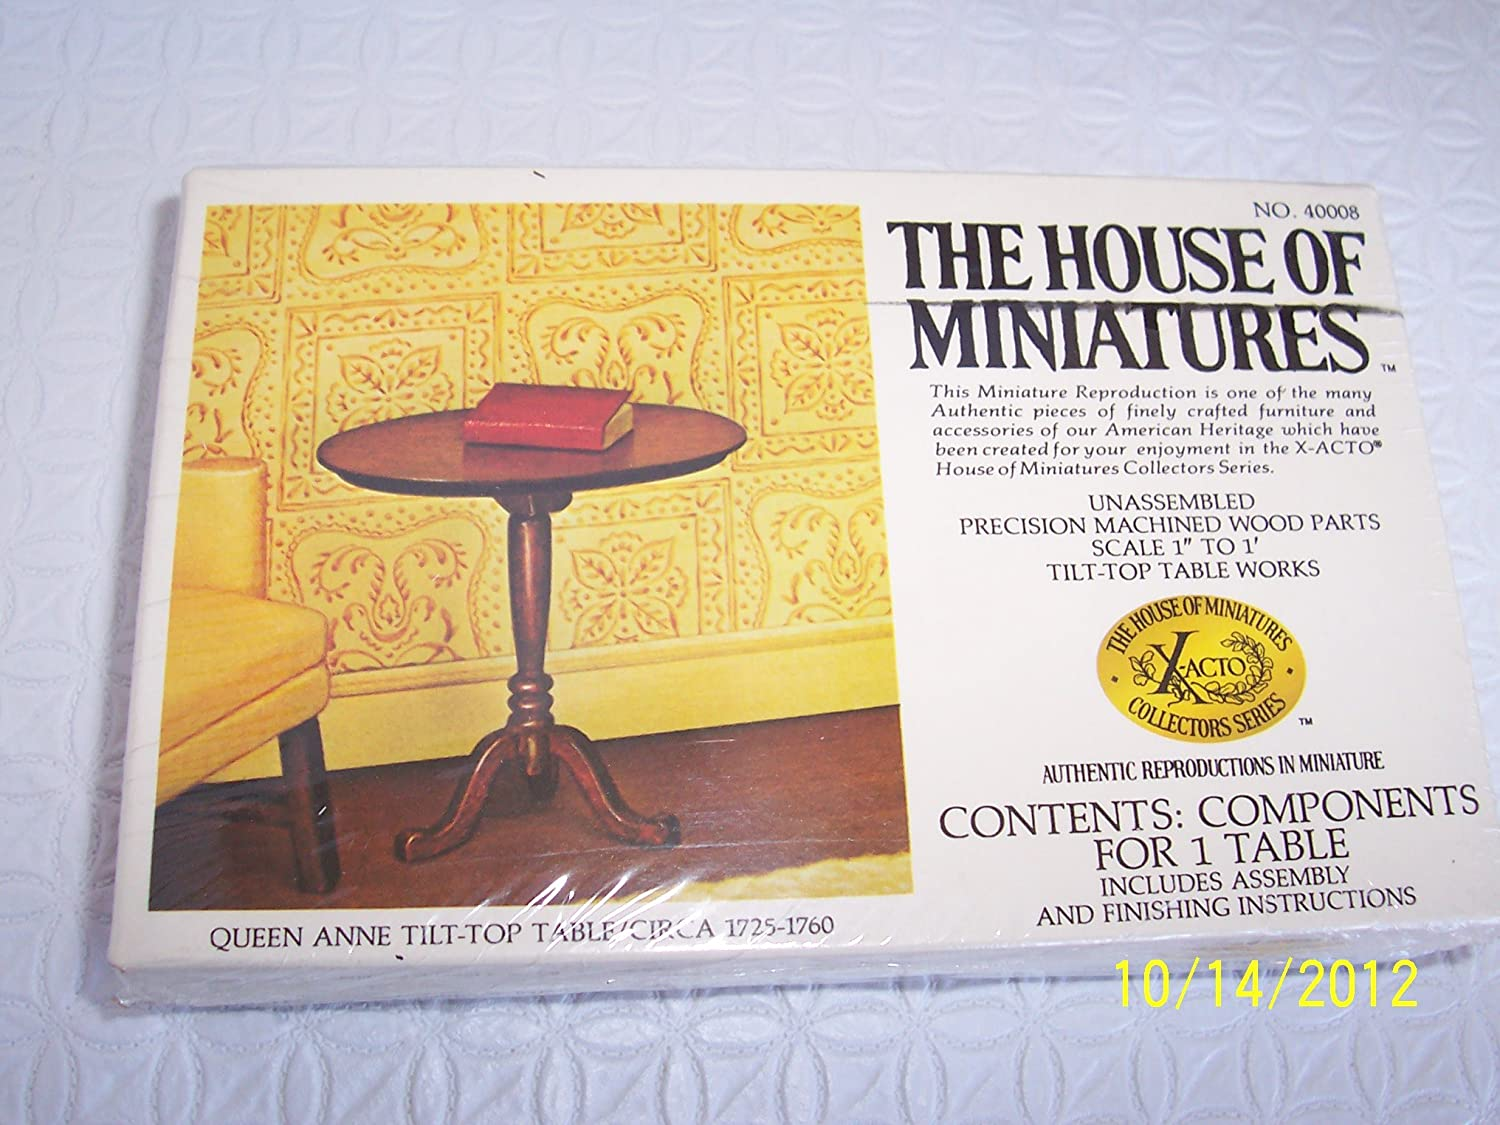 The House Of Miniatures - Queen Anne Tilt-Top Table / Circa 1725-1760 - Doll House Furniture #40008